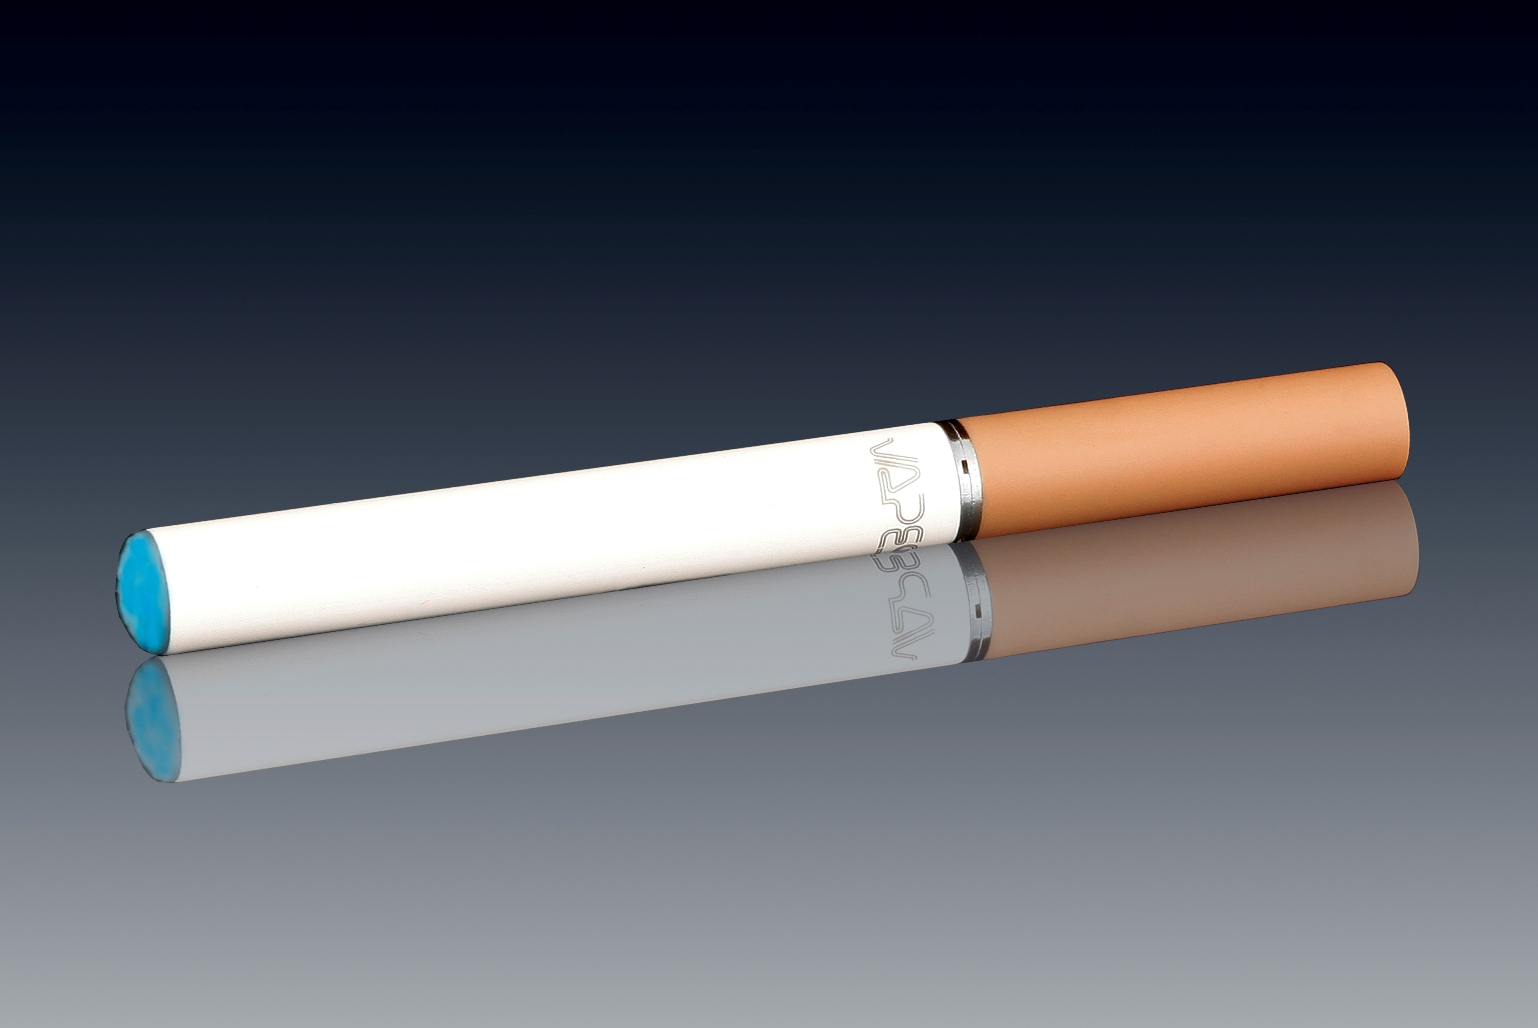 e smoking Tobacco information and tips for quitting smoking.